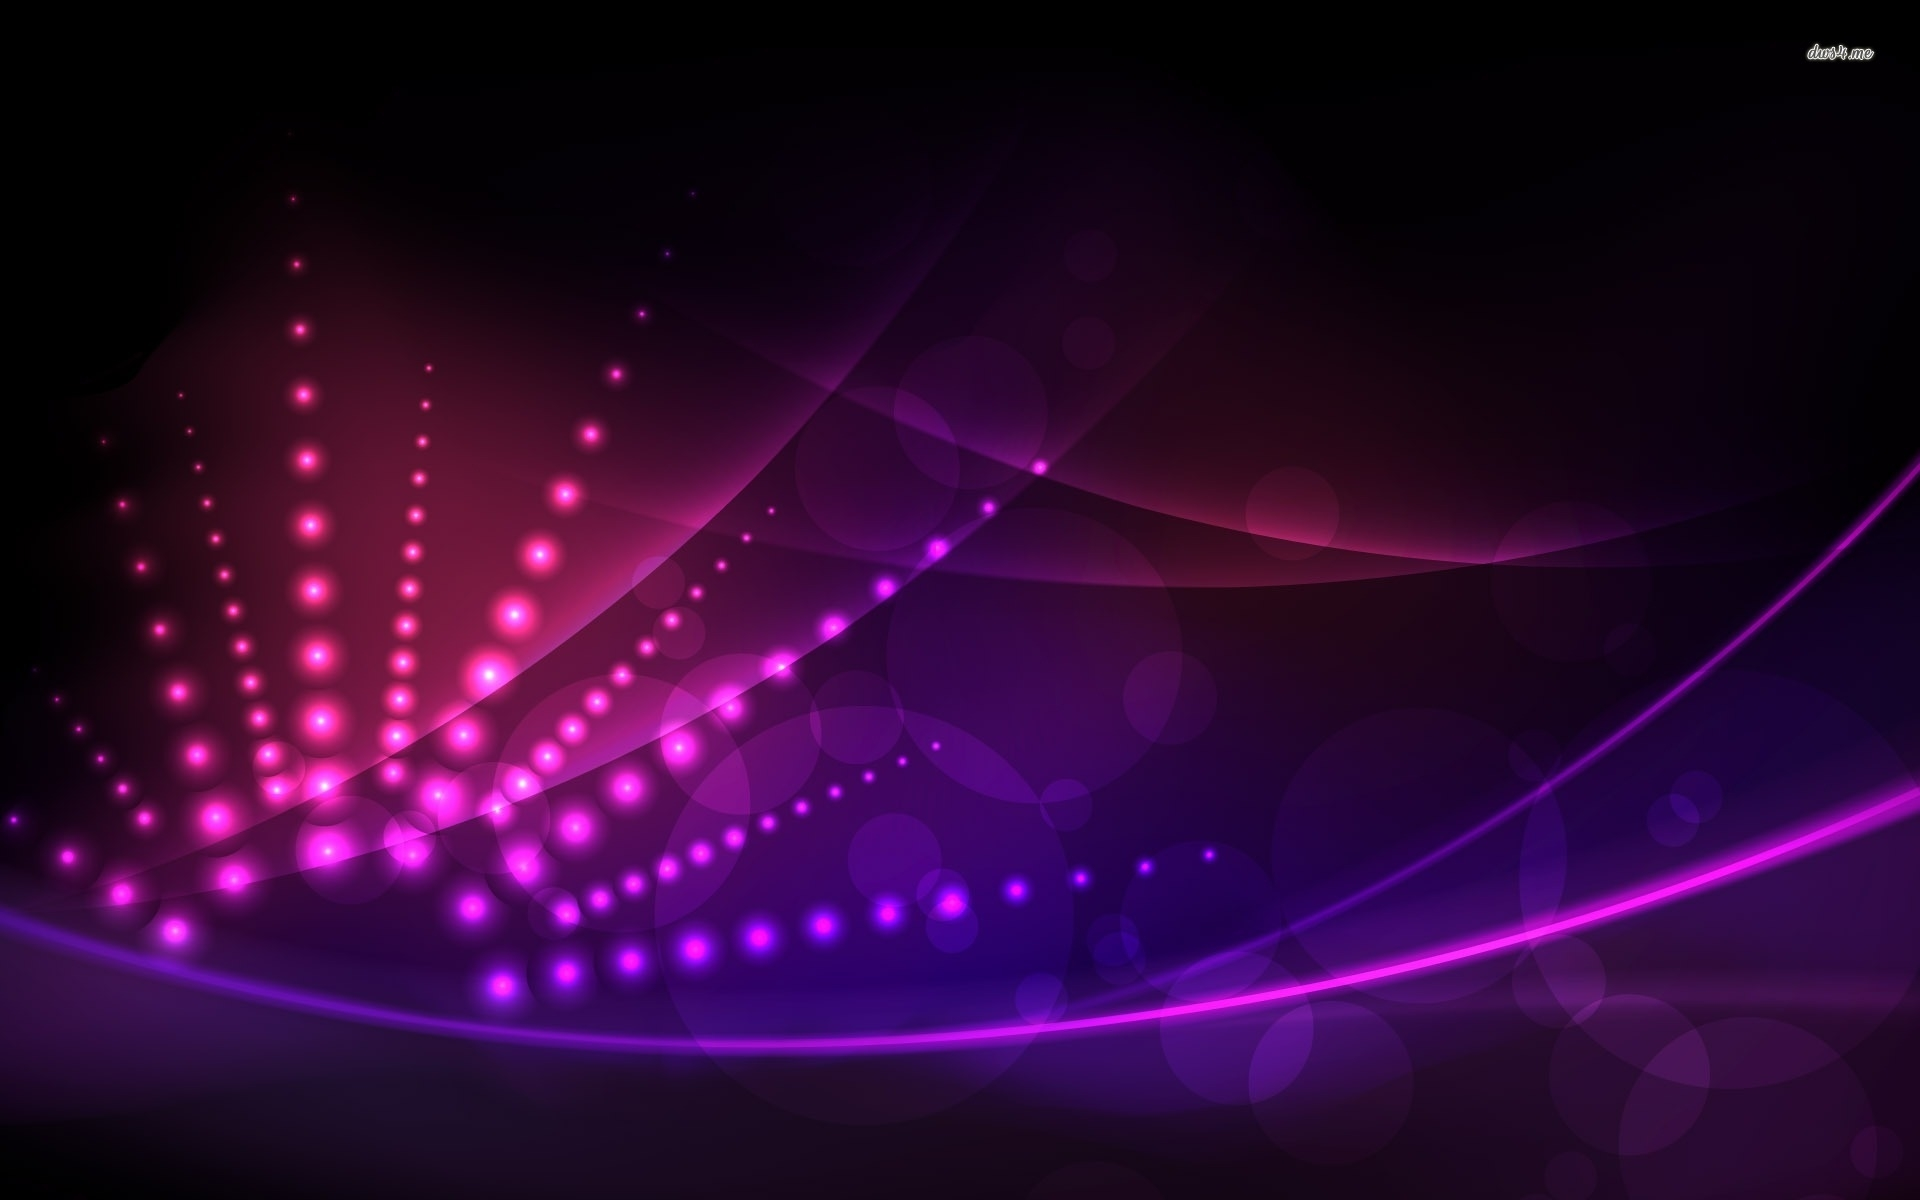 purple abstract deskto